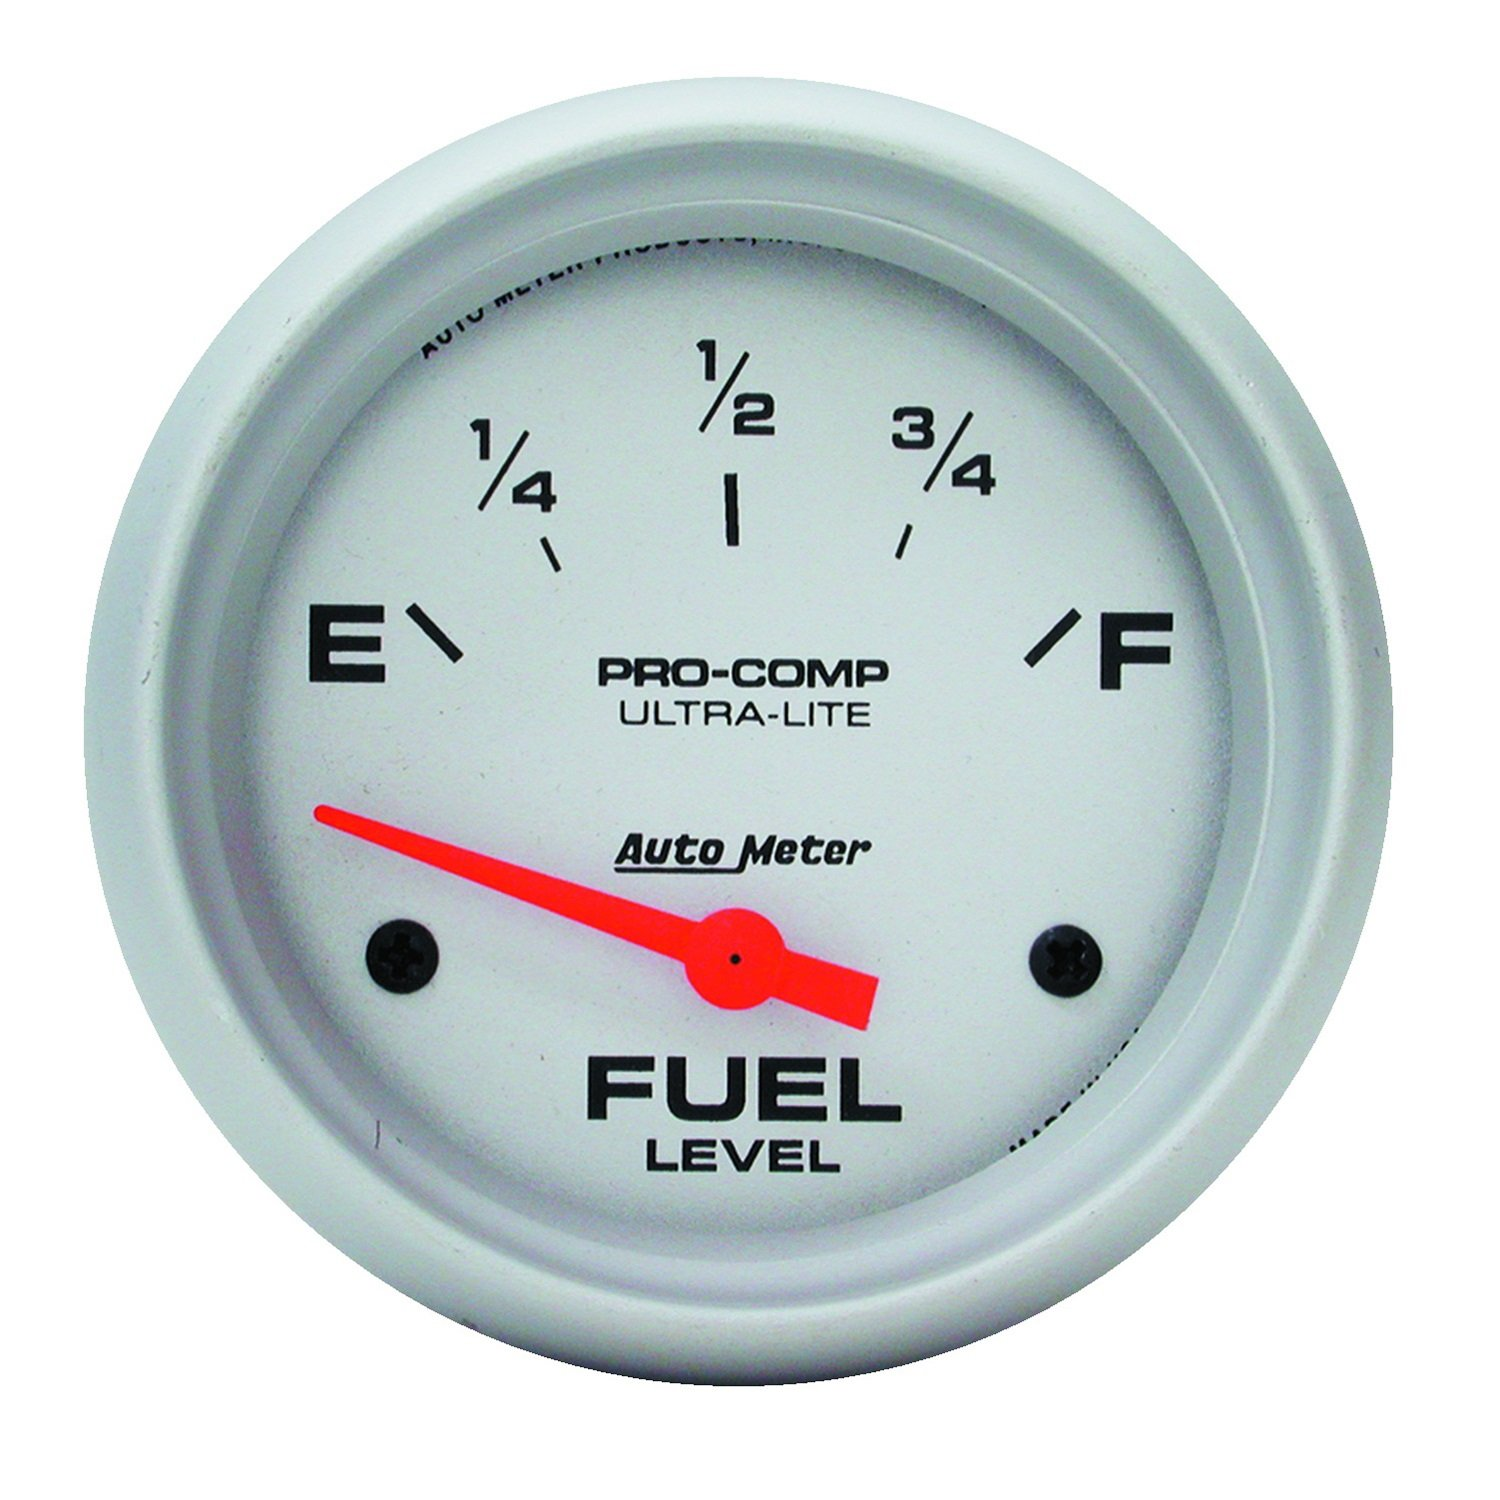 Auto Meter 4414 Ultra-Lite Electric Fuel Level Gauge